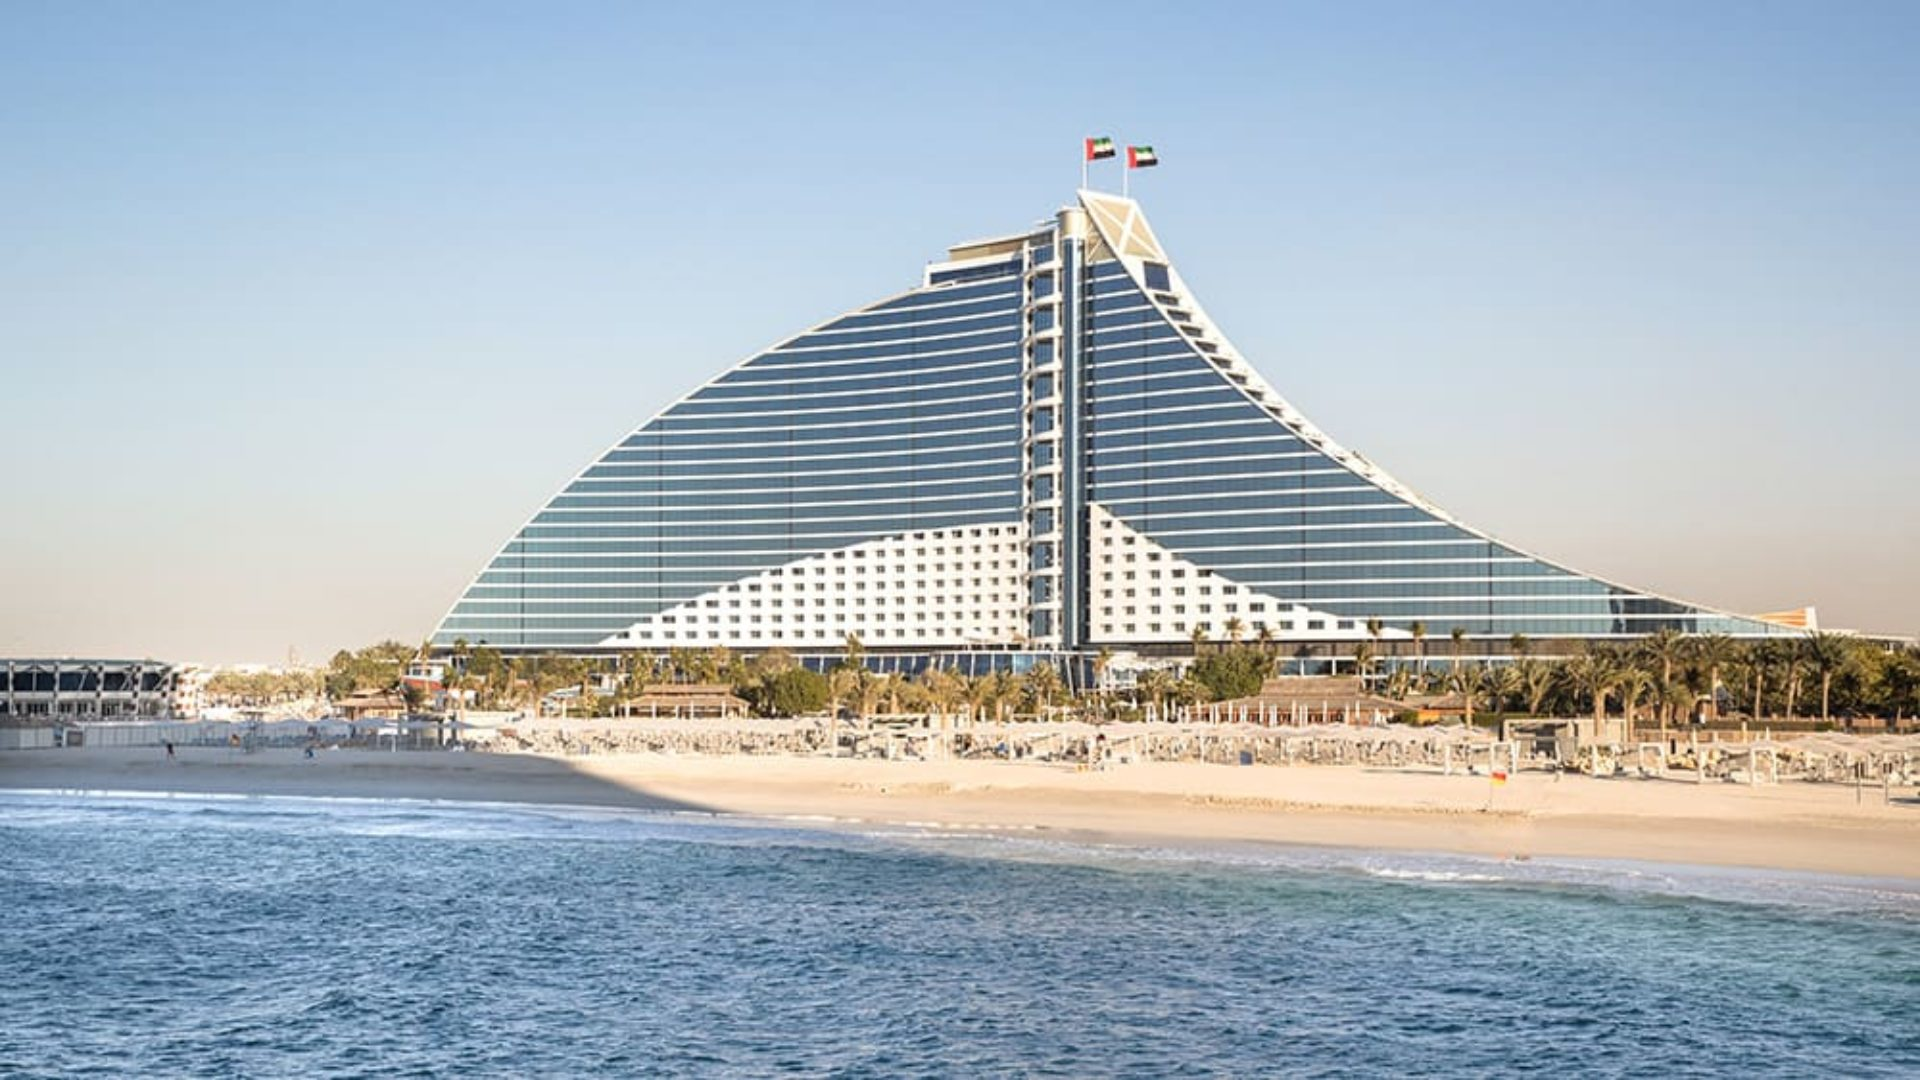 Exterior of the Jumeirah Beach Hotel